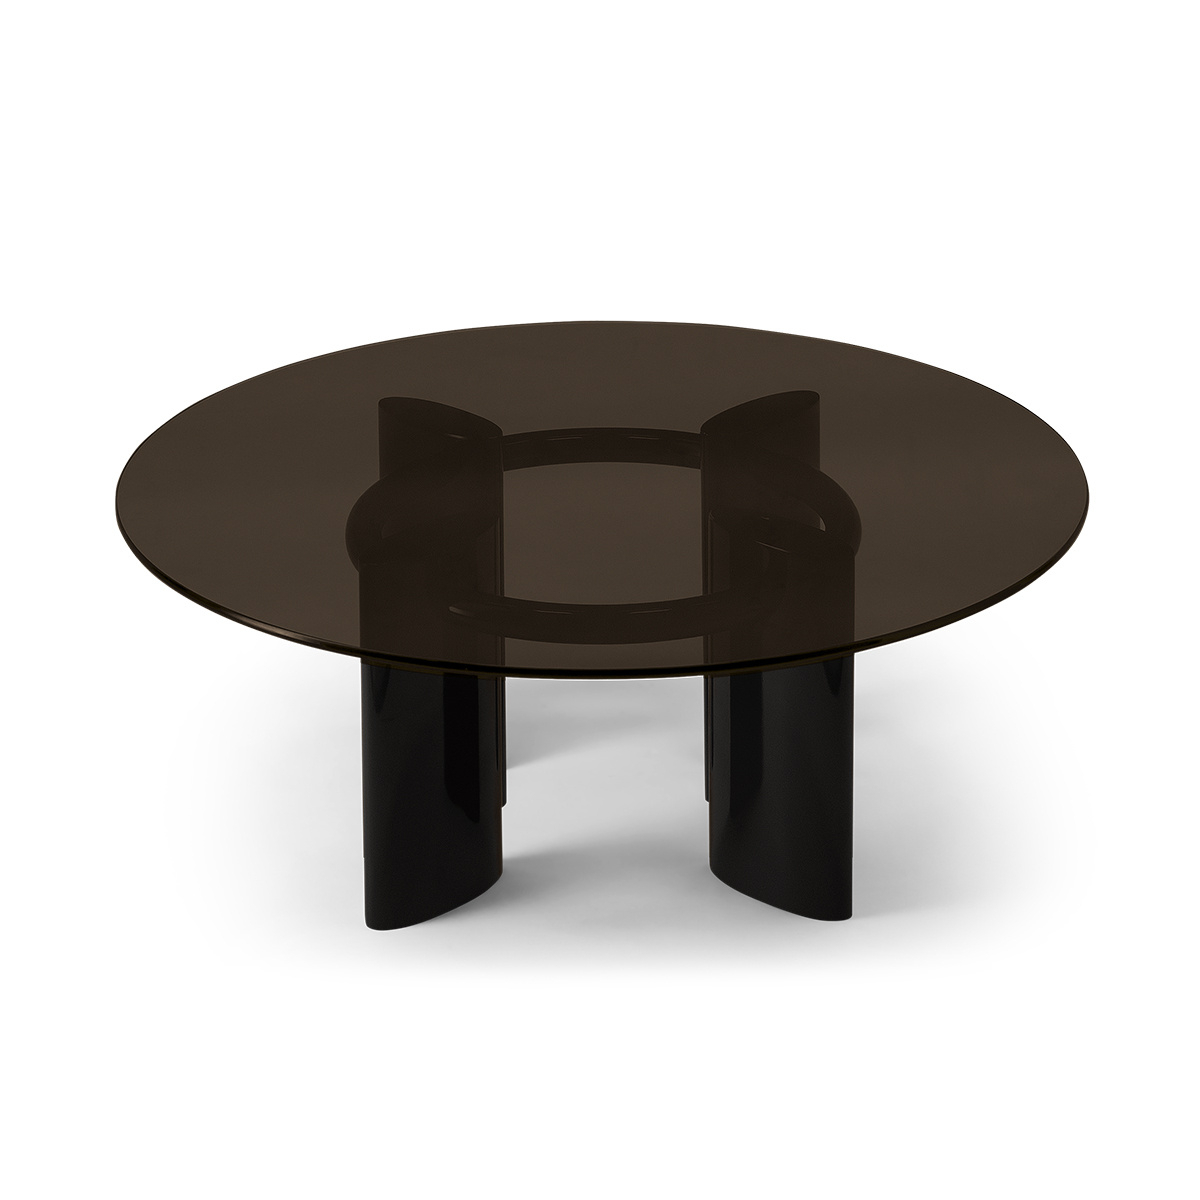 Popular Smoked Oval Glasstop Dining Tables Within Carlotta Coffee Table, Smoked Glass Top And Black Legs (View 7 of 25)